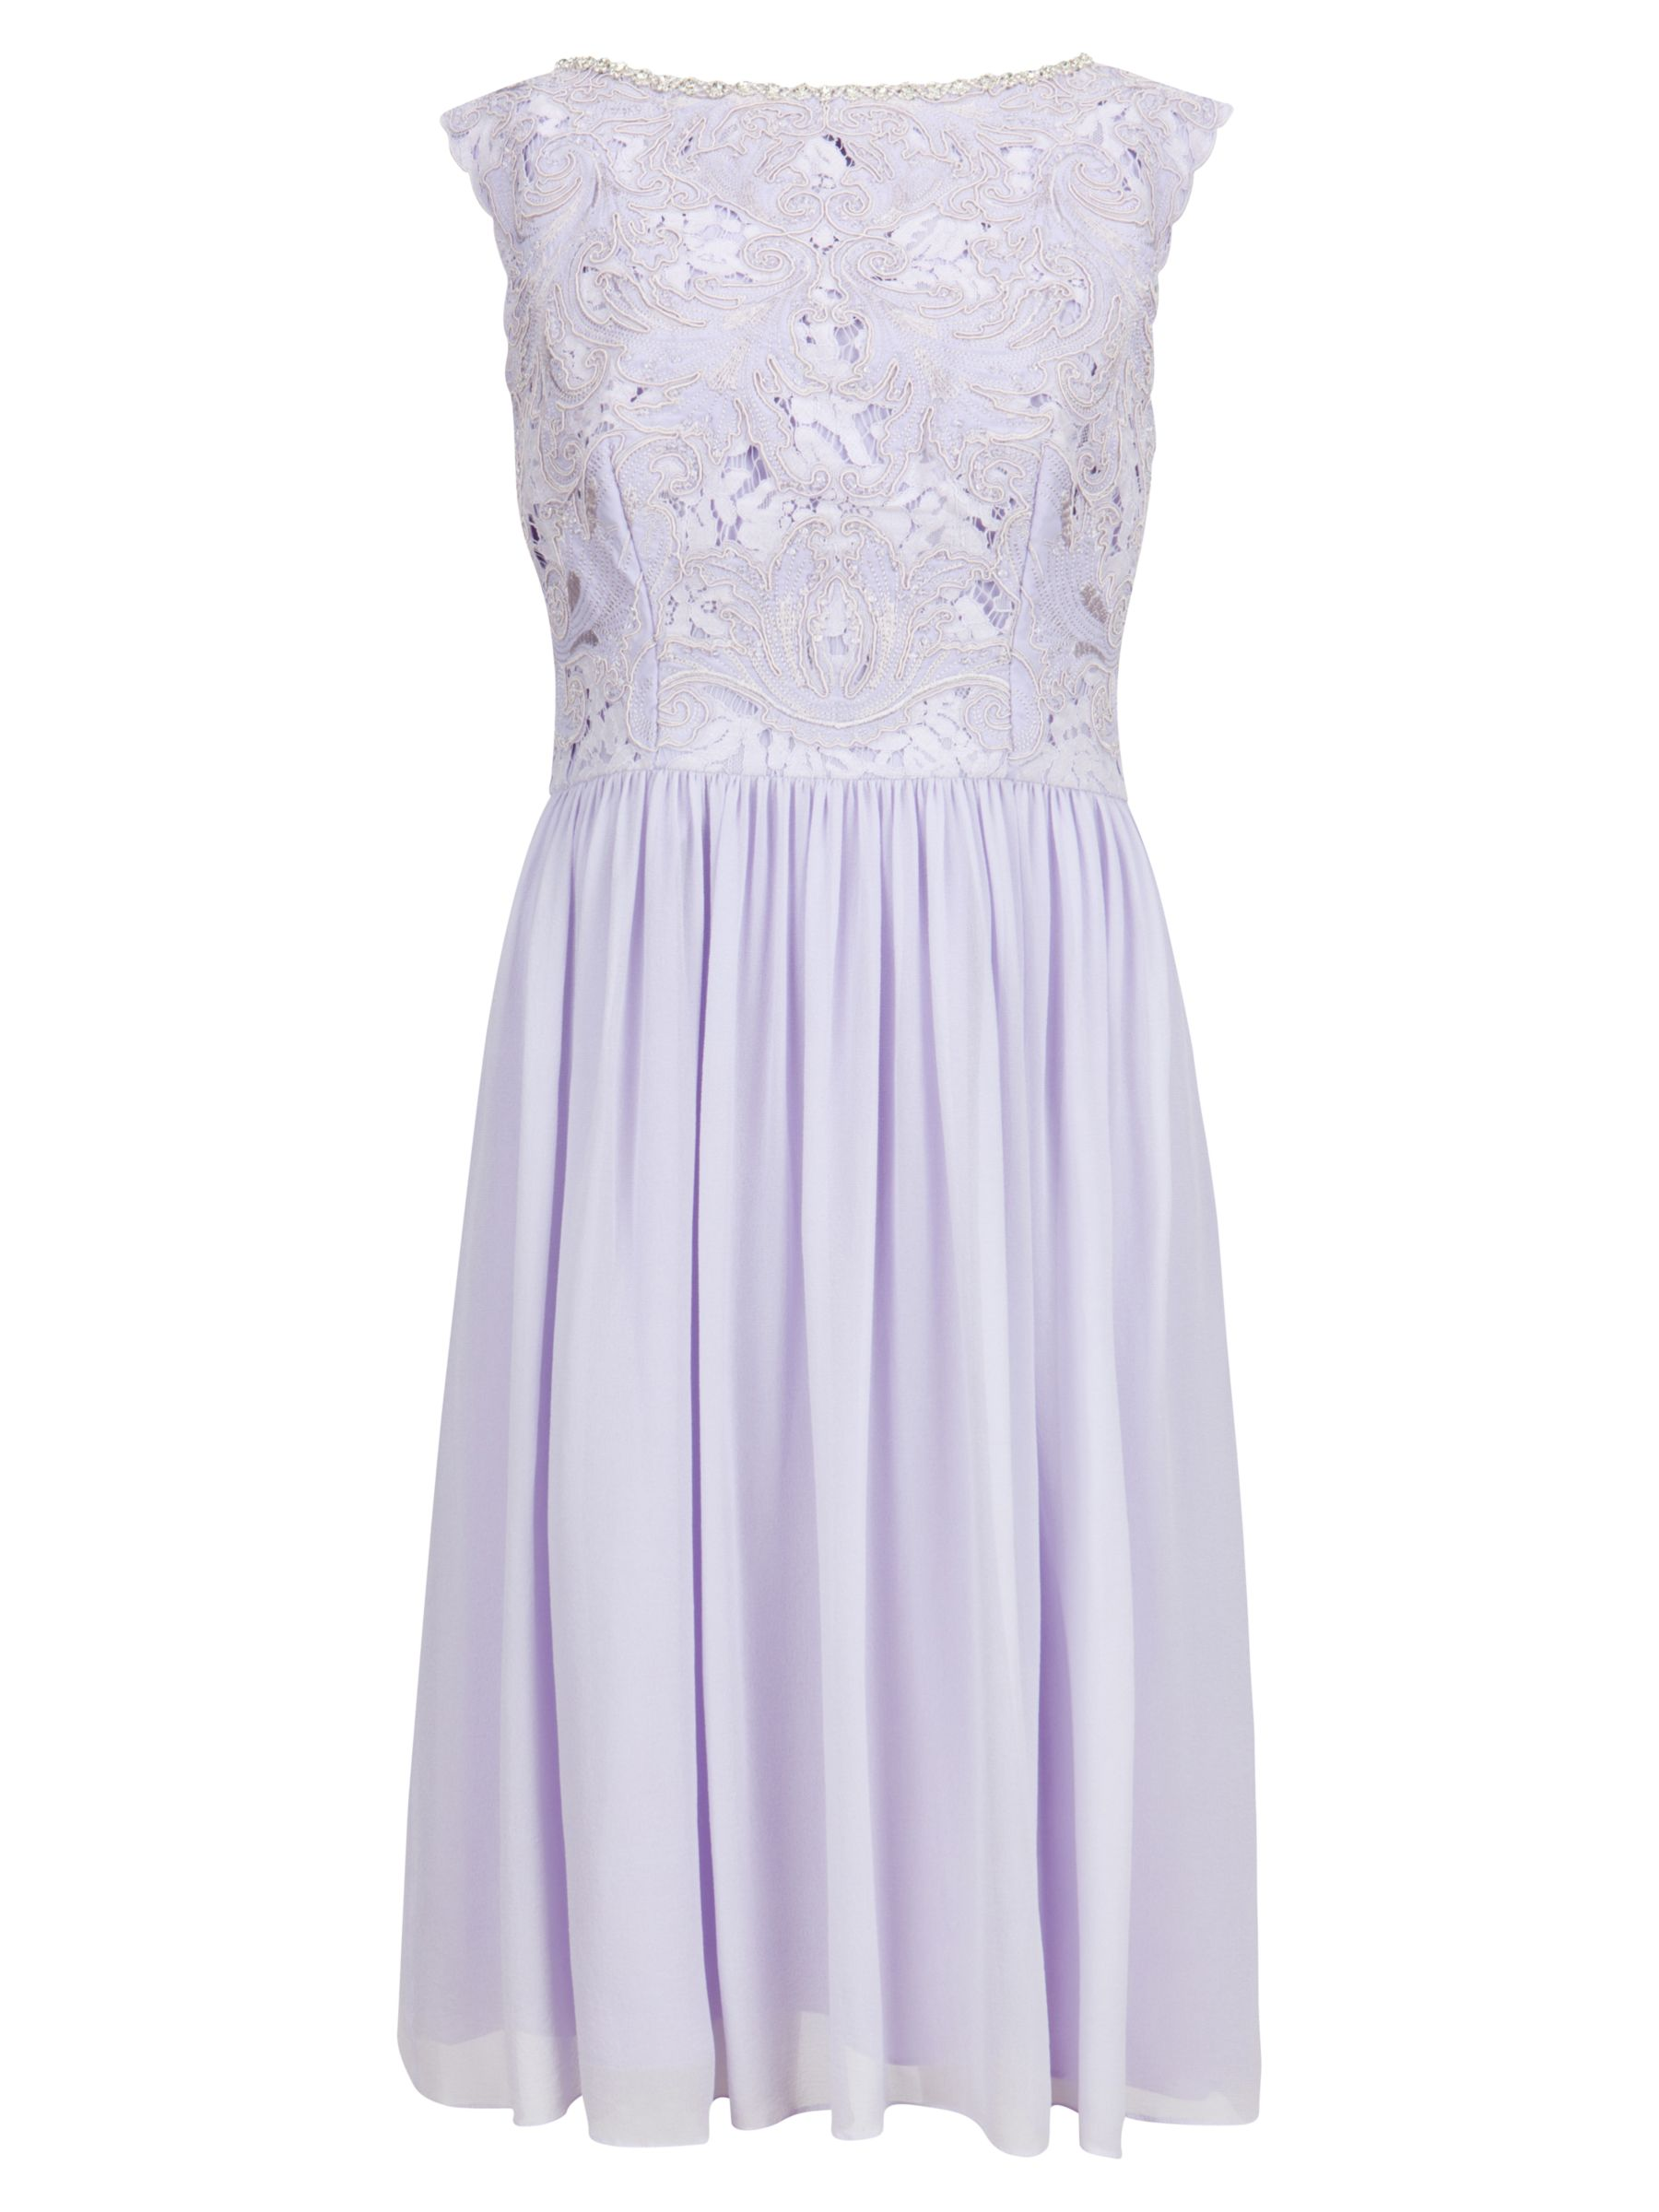 ted baker embellished lace bodice dress light purple, ted, baker, embellished, lace, bodice, dress, light, purple, ted baker, 4|5|2|3|1|0, edition magazine, ss15 trend pastels, women, womens dresses, gifts, wedding, wedding clothing, adult bridesmaids, fashion magazine, womenswear, men, brands l-z, 1869515